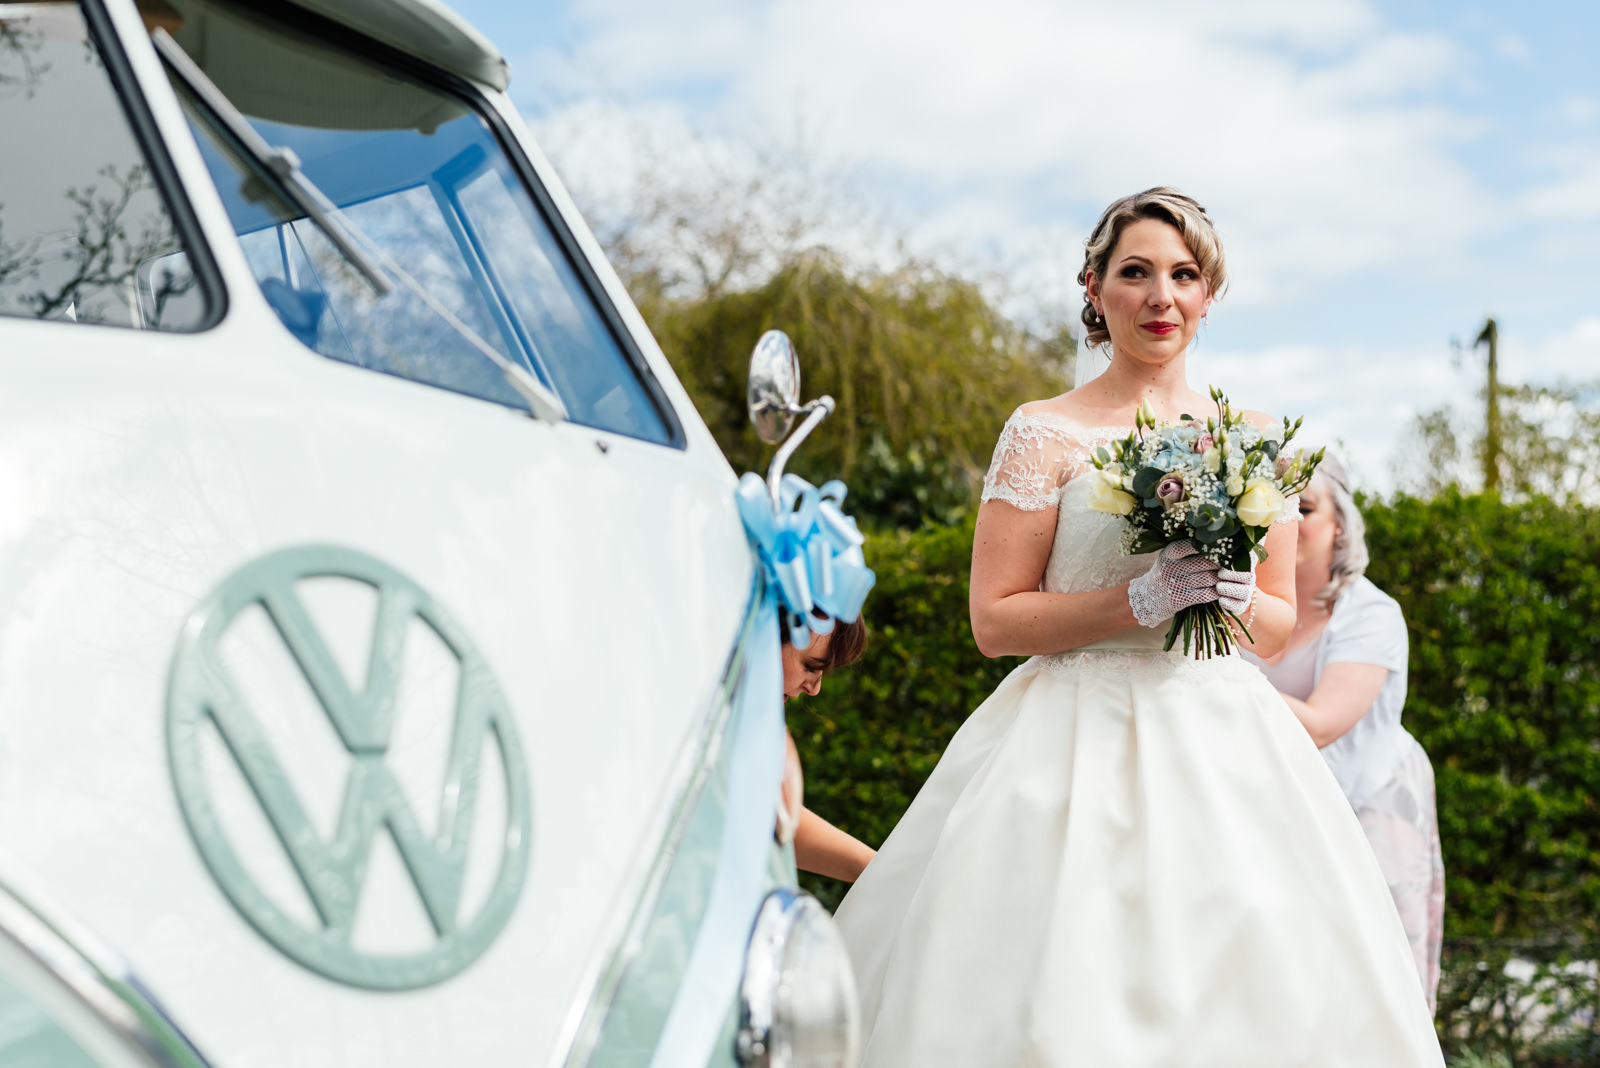 bride standing next to camper van just before walking to church